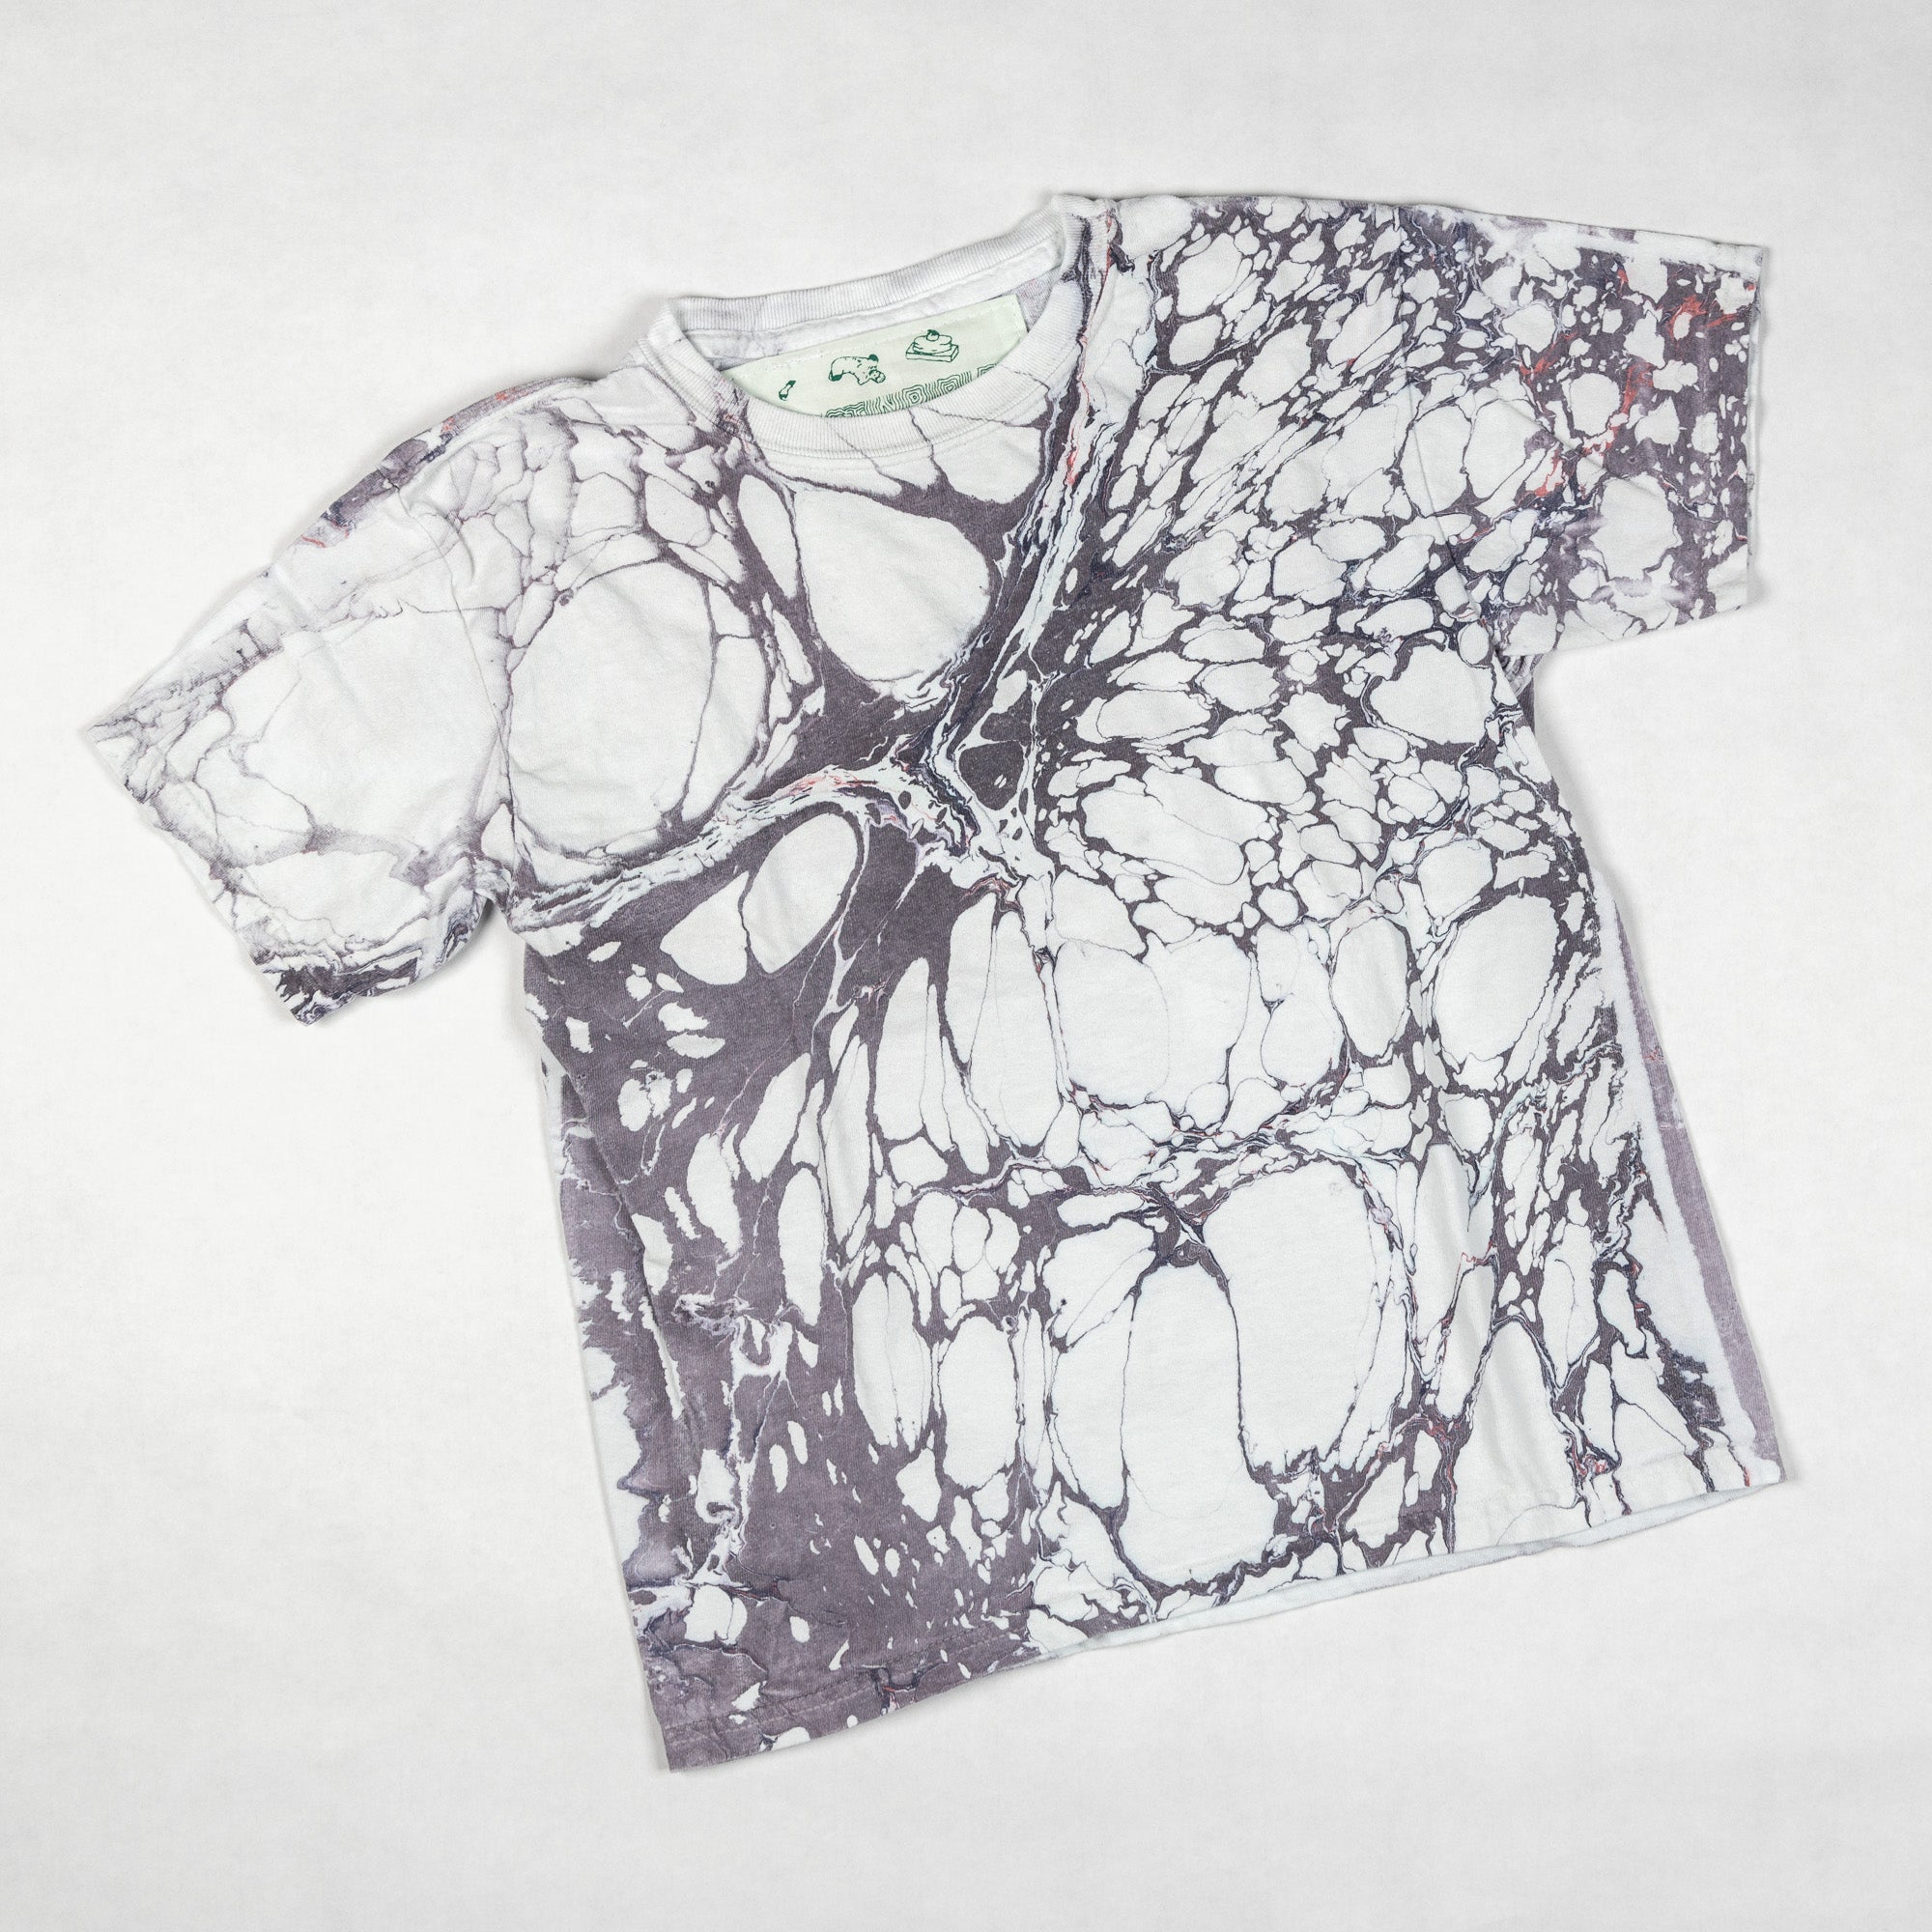 T-SHIRT - Youth Small